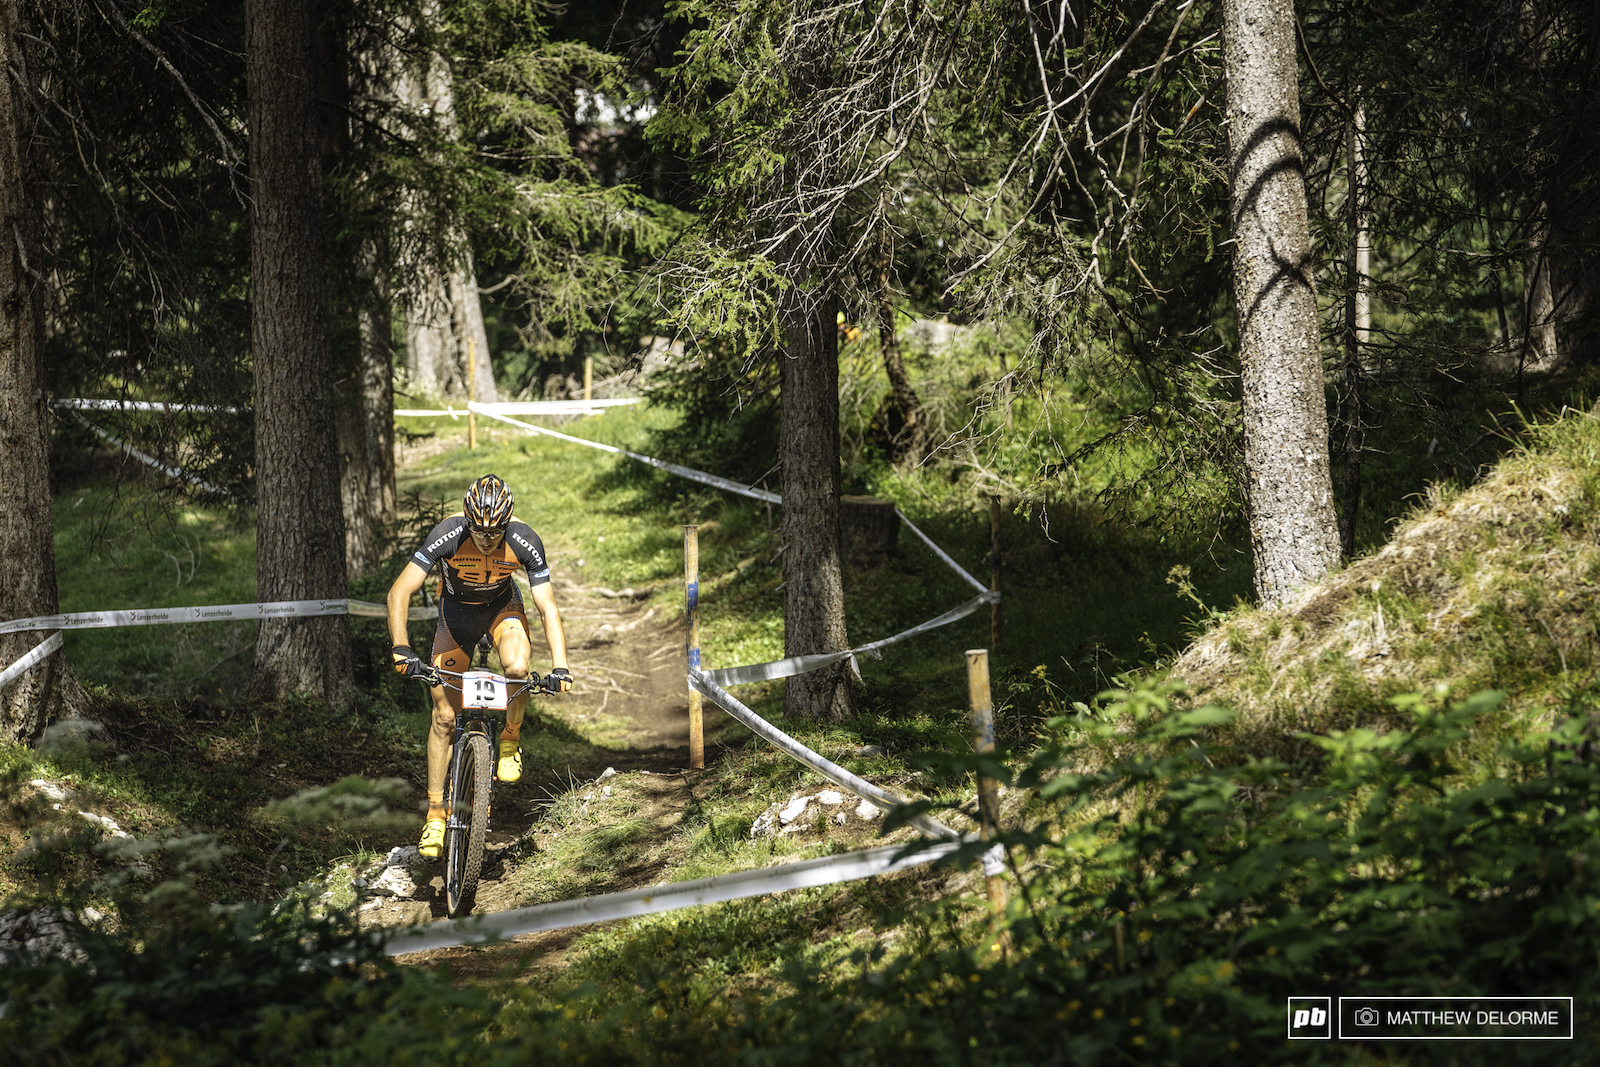 Jagged Teeth Lenzerheide XC World Cup 2017 - Practice Photo Epic